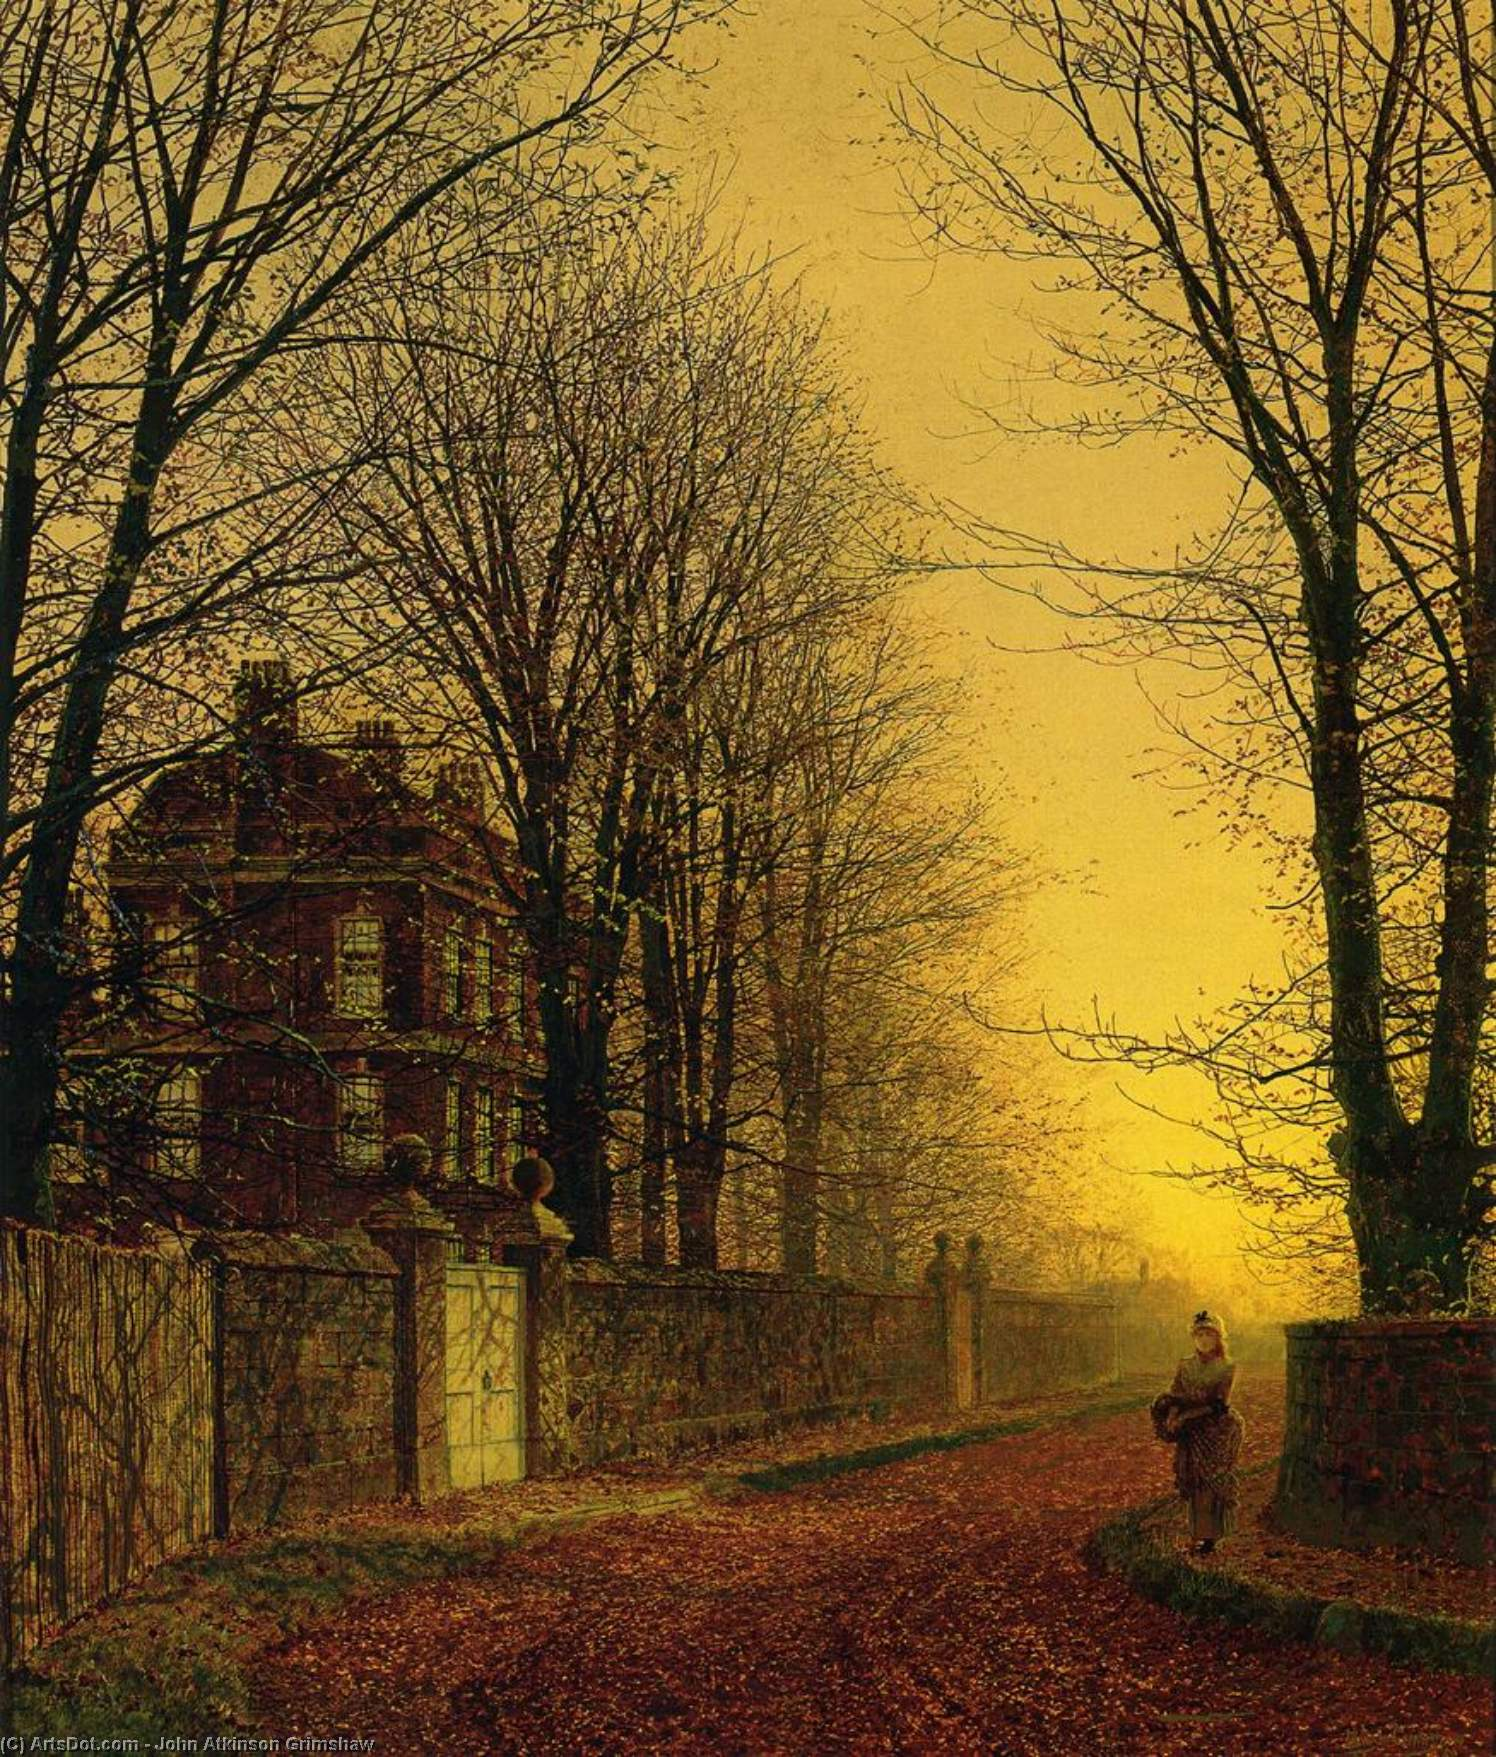 Autumn Gold by John Atkinson Grimshaw (1836-1893, United Kingdom)